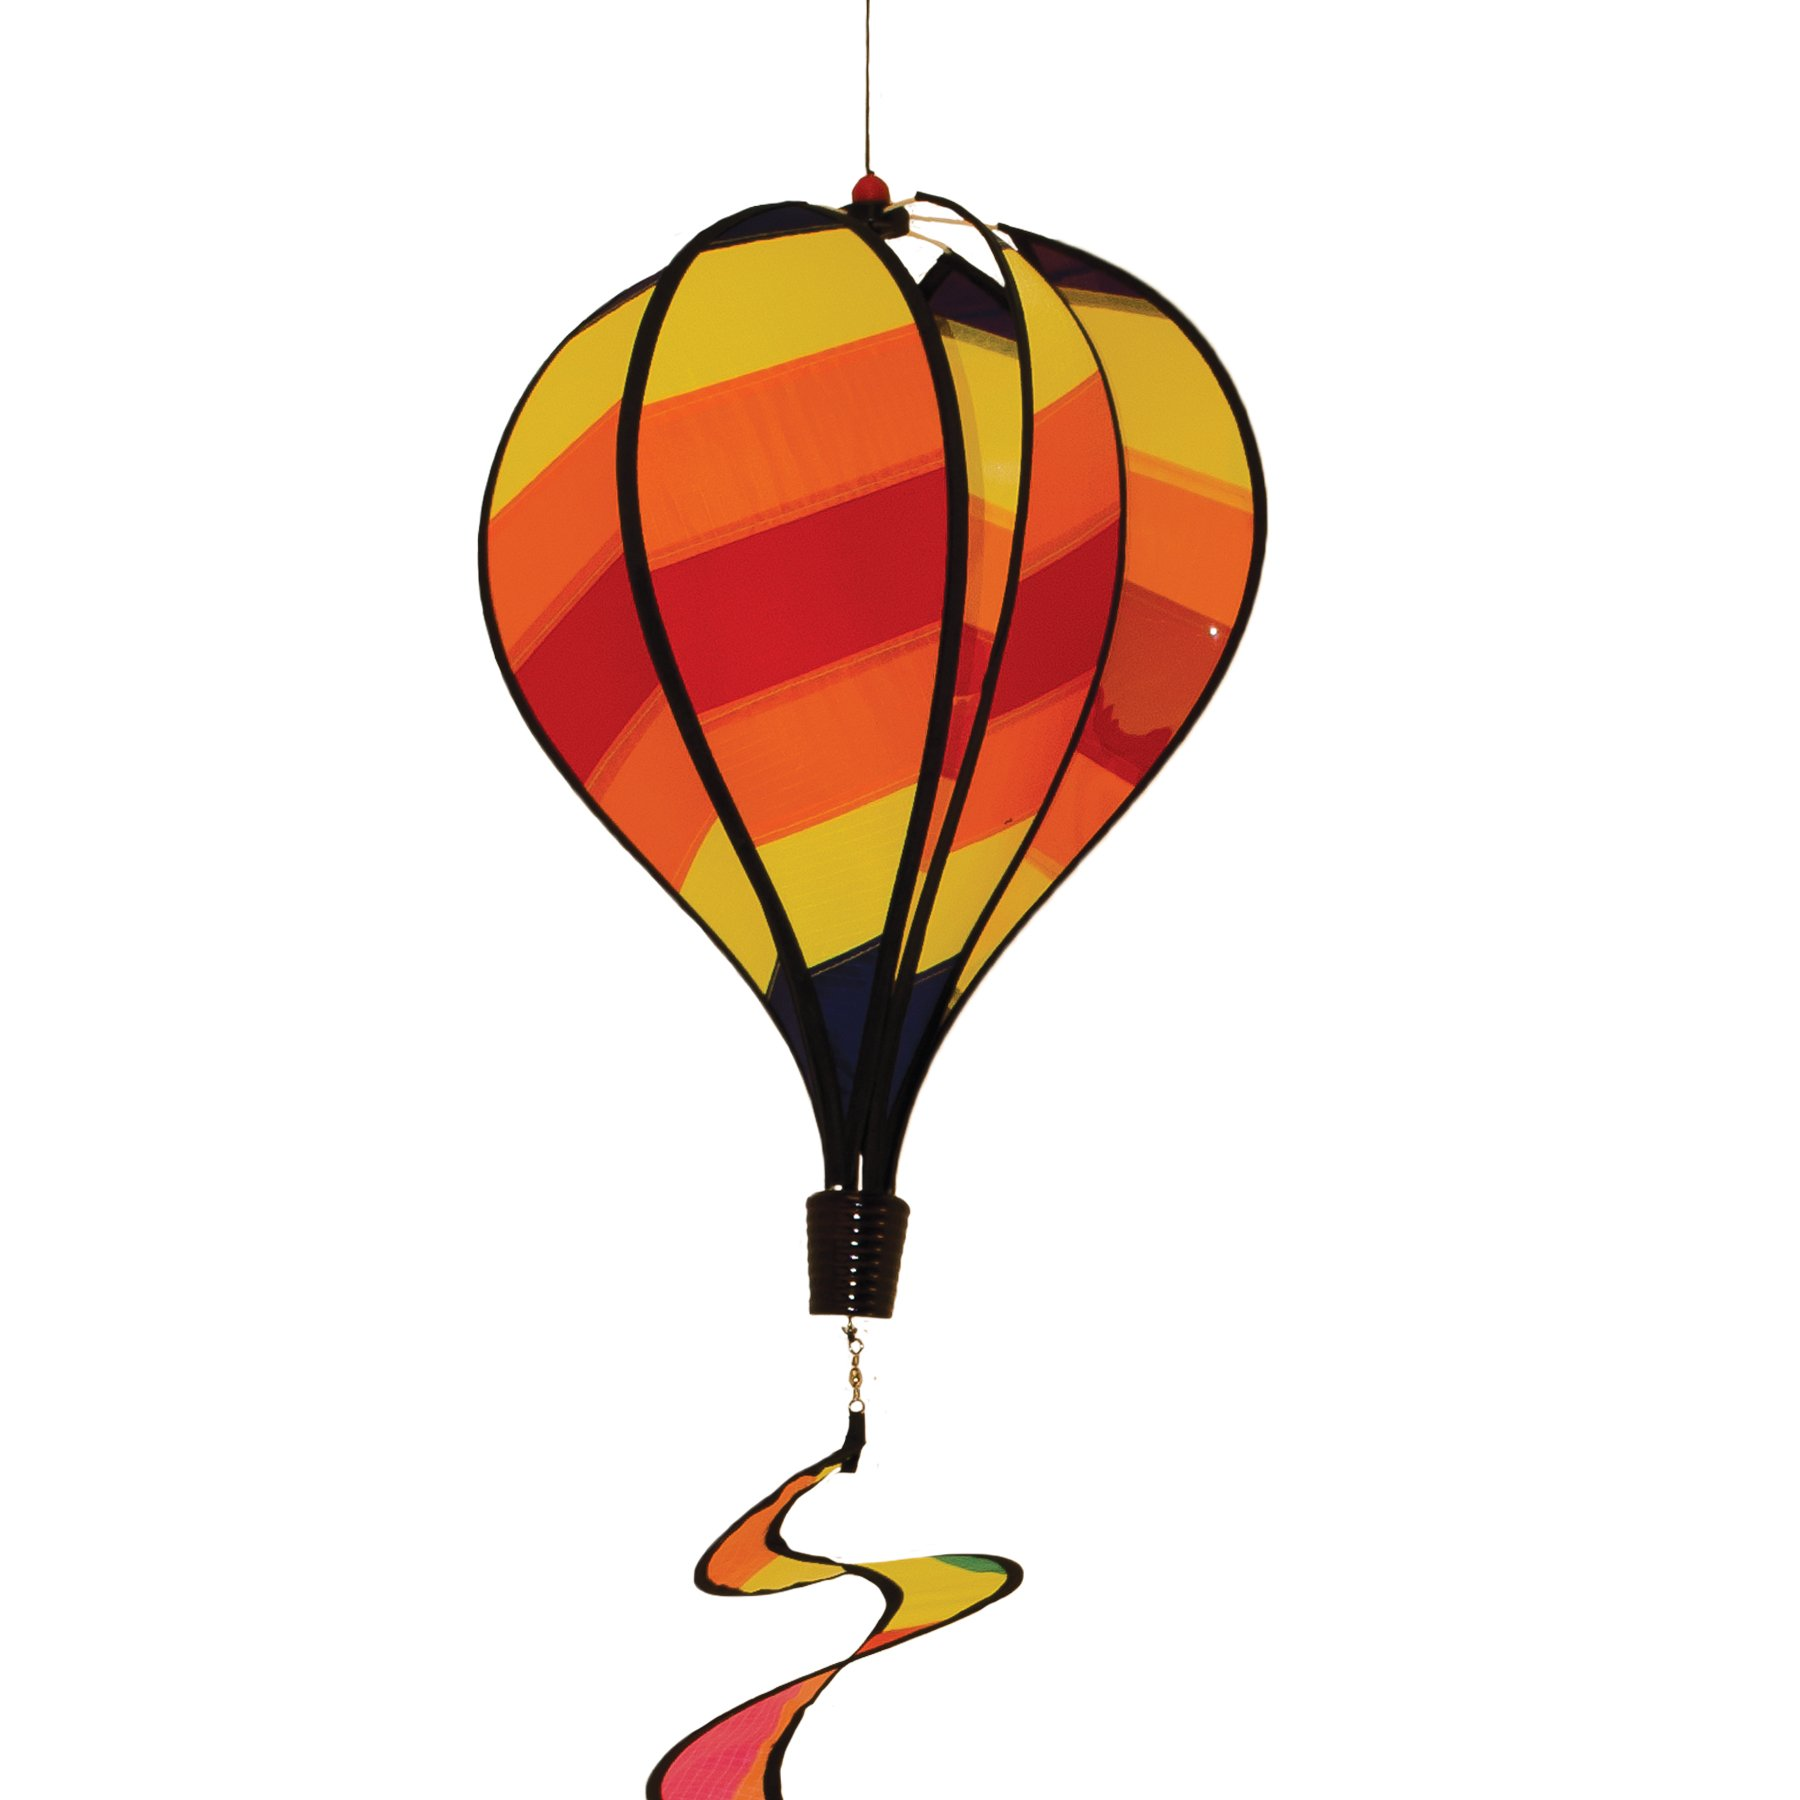 In the Breeze Hot Stripe Hot Air Balloon Wind Spinner